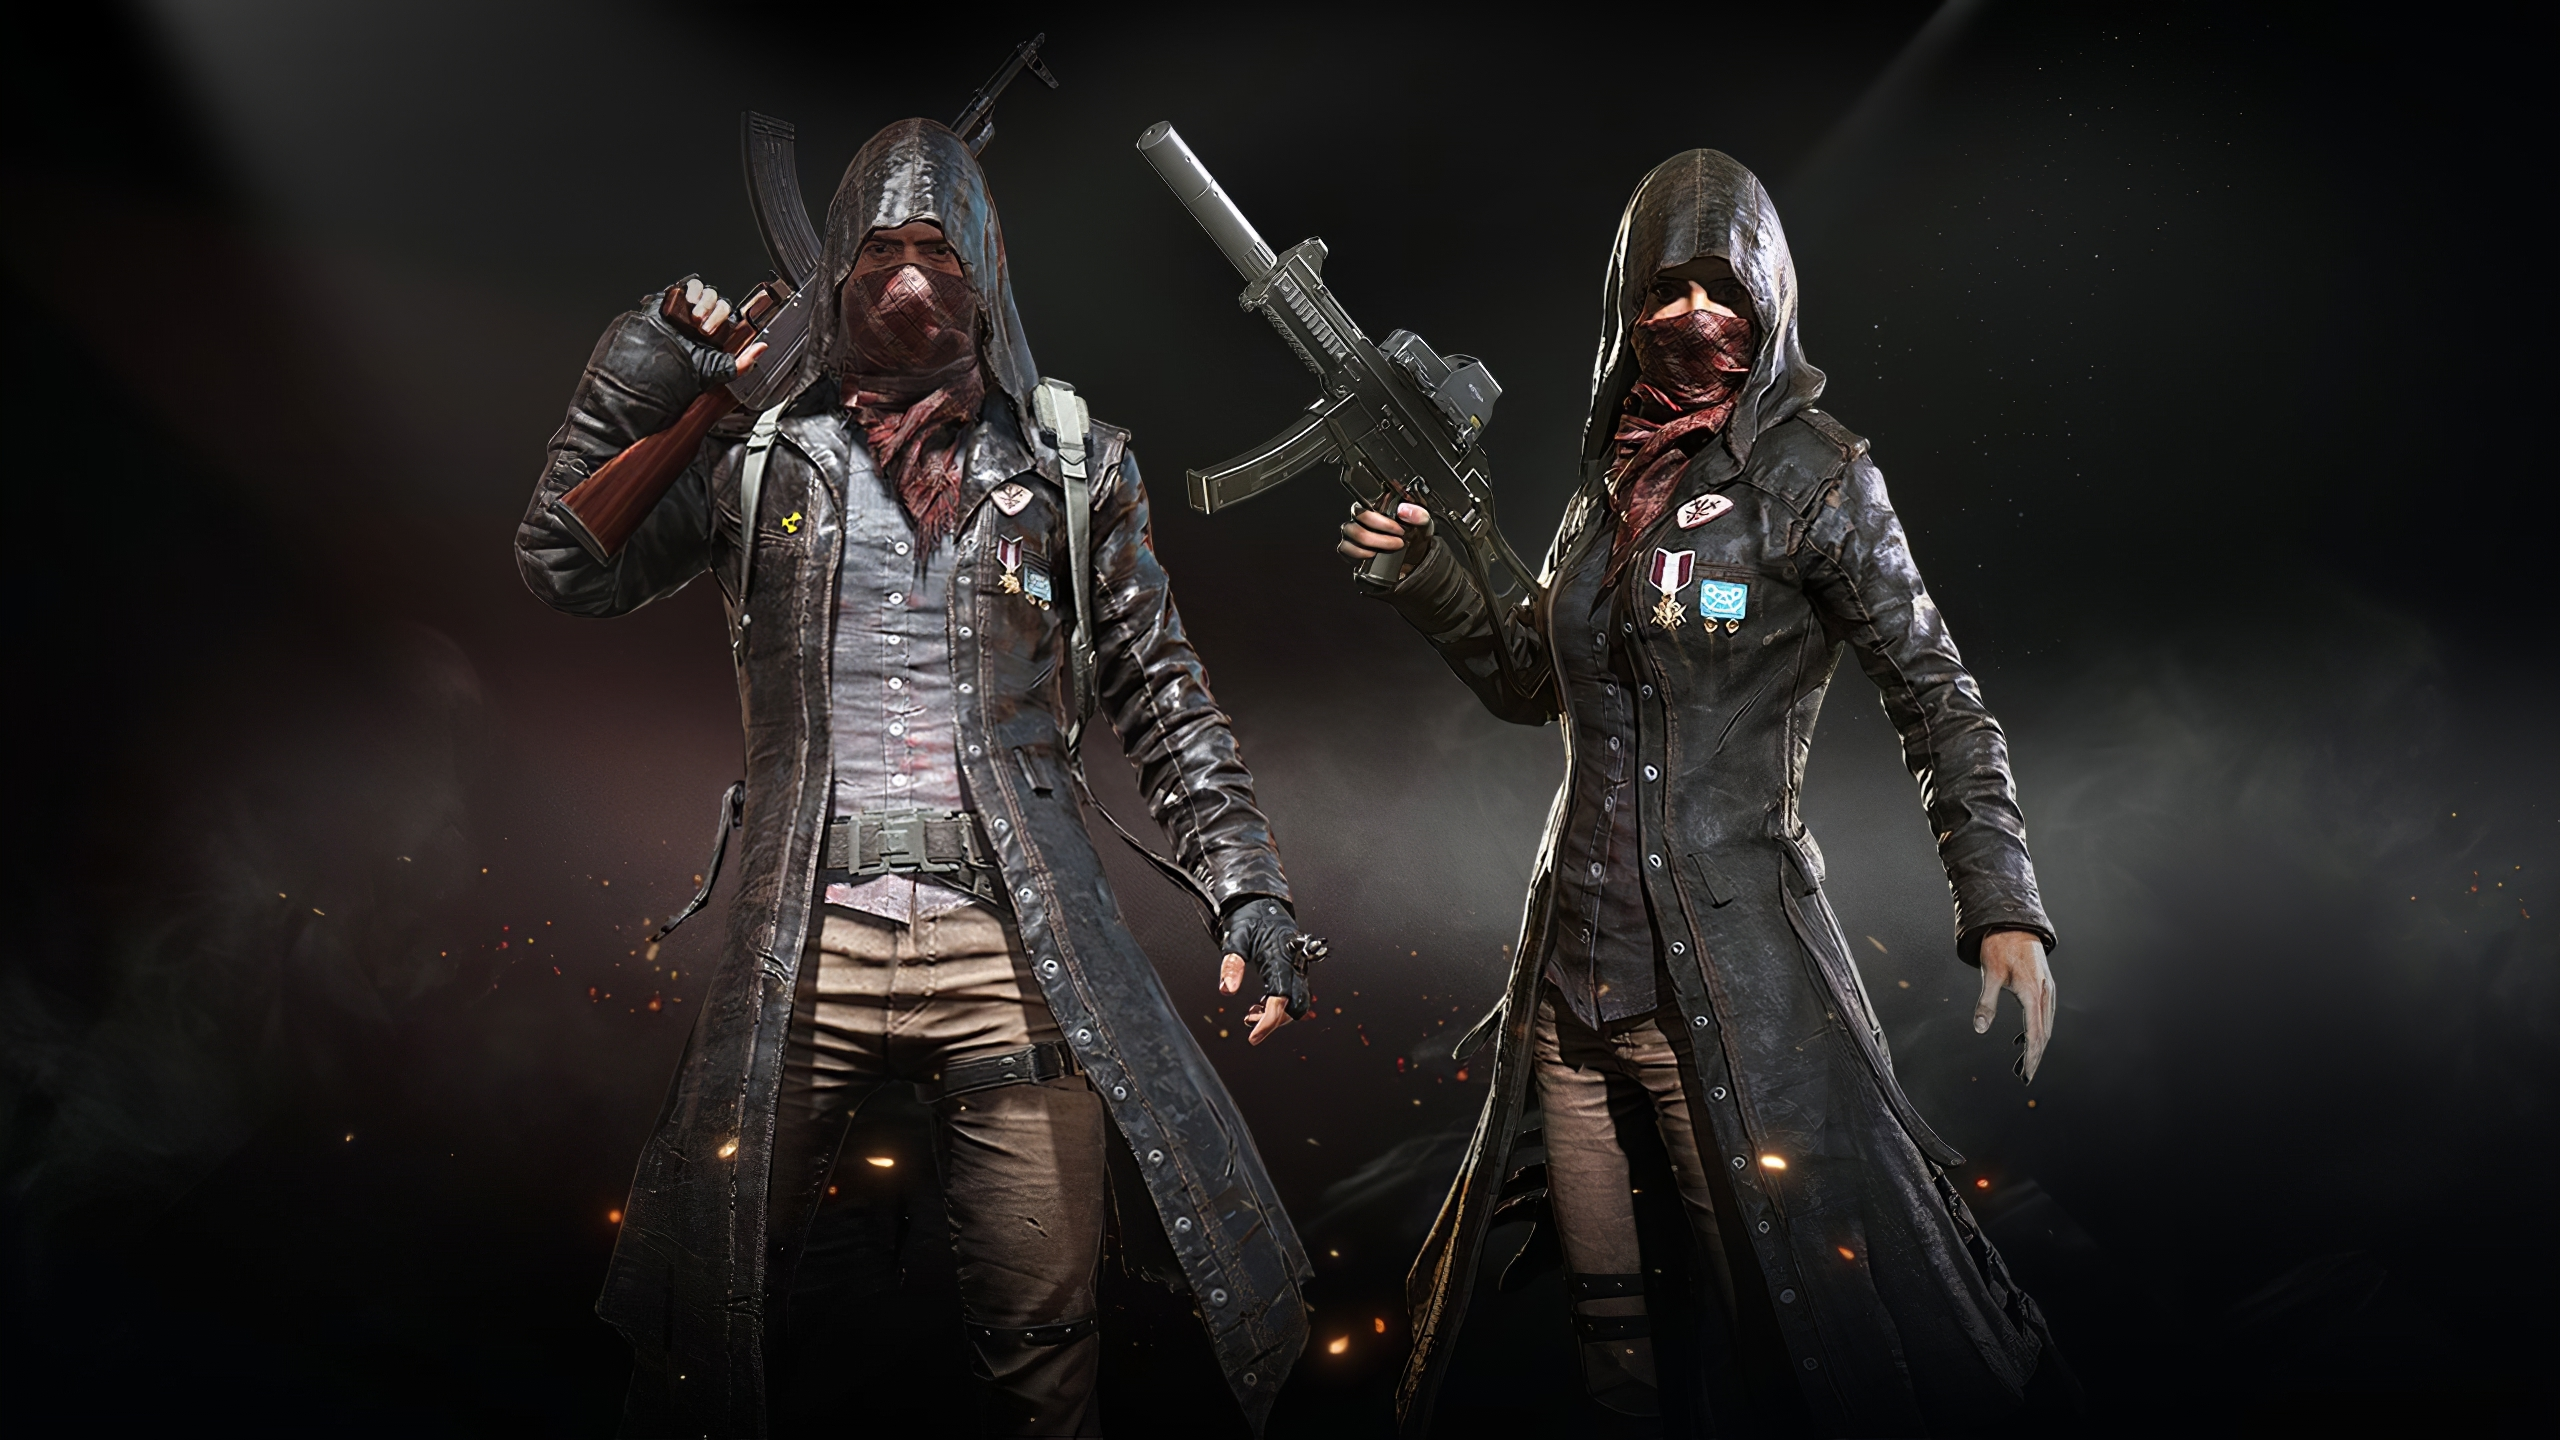 2560x1440 Pubg New 1440p Resolution Hd 4k Wallpapers Images Backgrounds Photos And Pictures